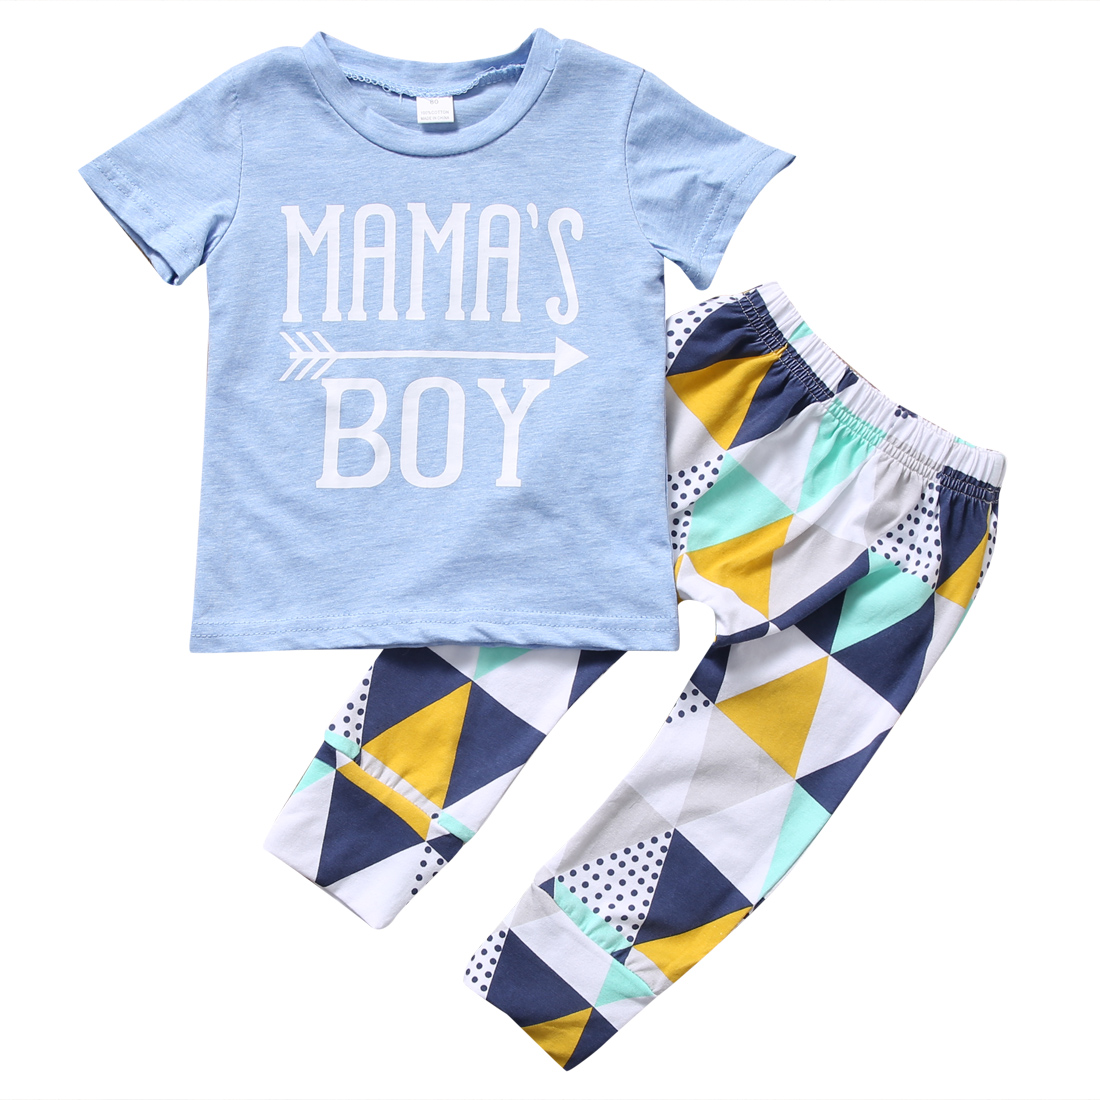 2017 Cute Newborn Baby Boy Clothes Summer Short Sleeve Mama's Boy Cotton T-shirt Tops Pant 2PCS Outfit Toddler Kids Clothing Set toddler kids baby girls clothing cotton t shirt tops short sleeve pants 2pcs outfit clothes set girl tracksuit